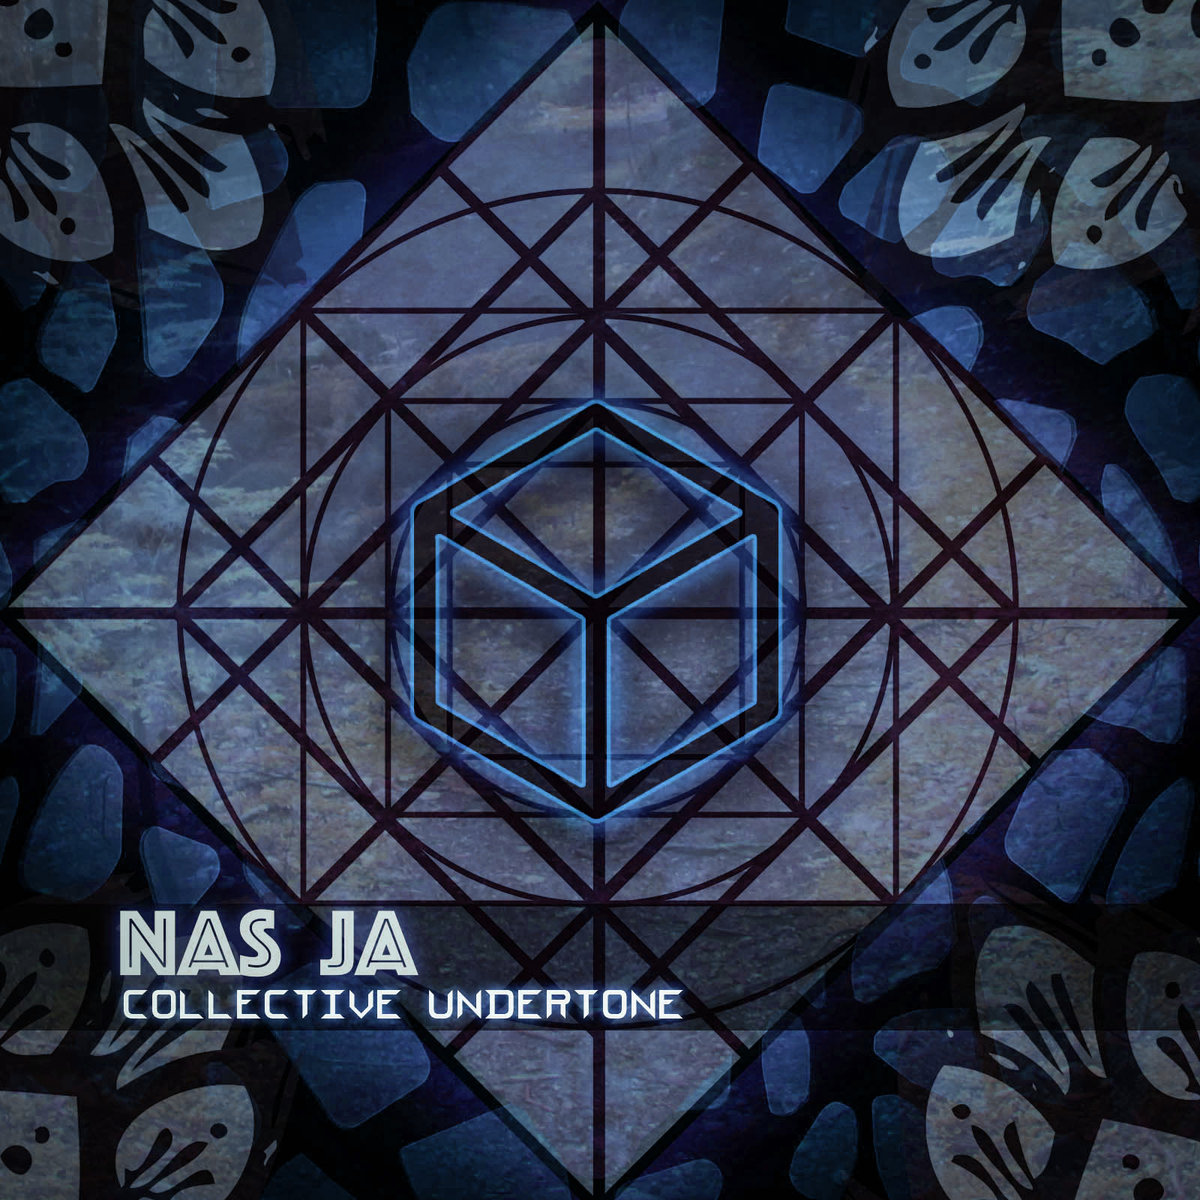 Nas-Ja - Bye-ways @ 'Collective Undertone' album (bass, electronic)